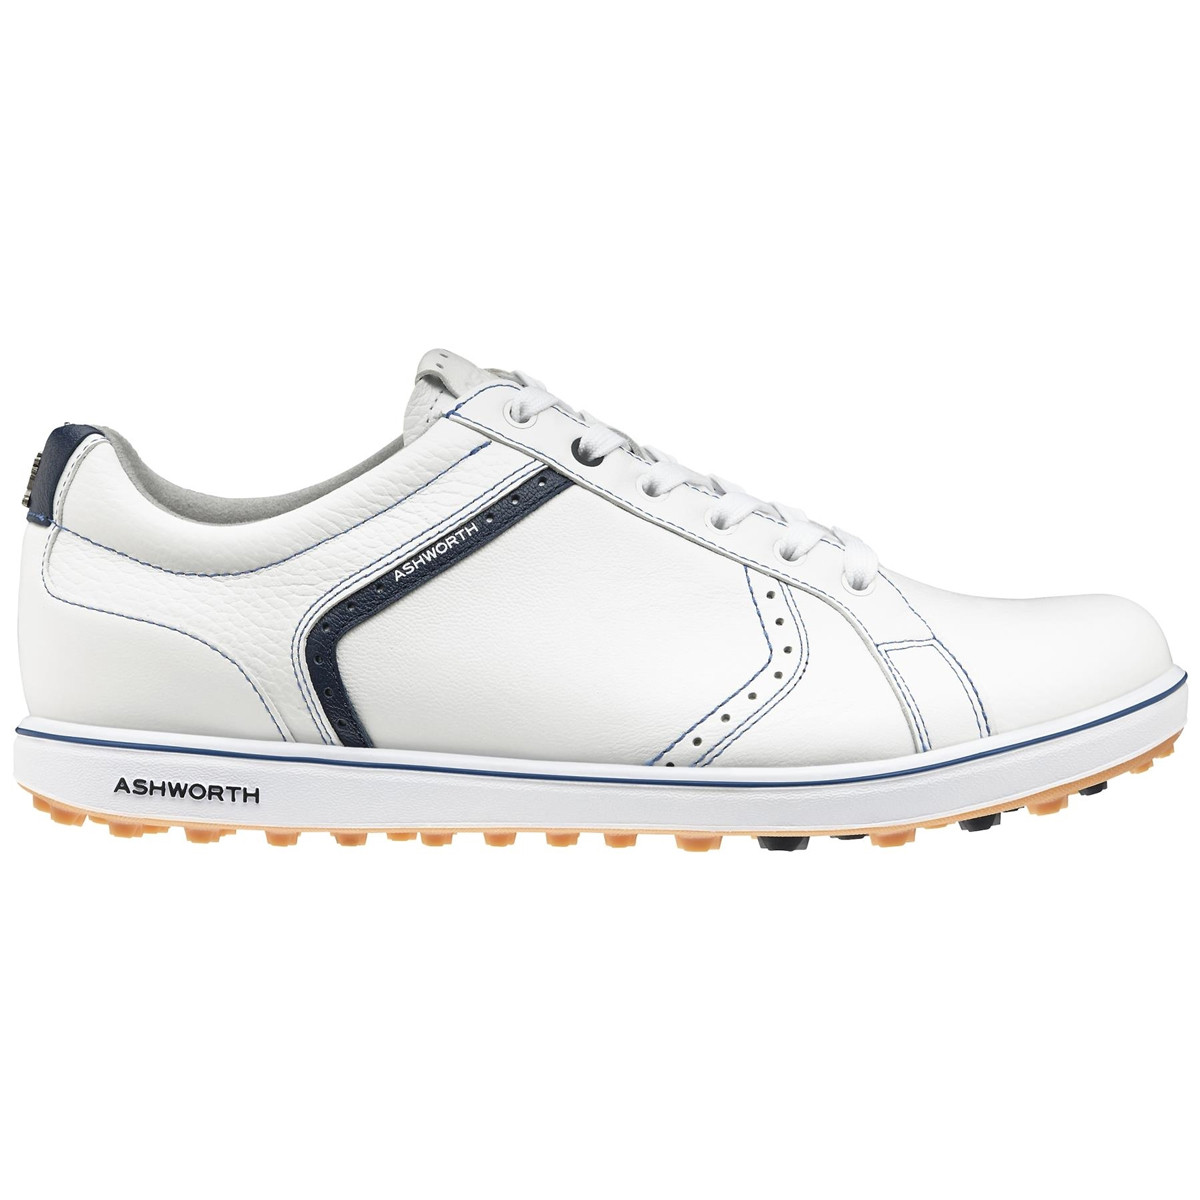 Ashworth Cardiff Adc  Golf Shoes Review